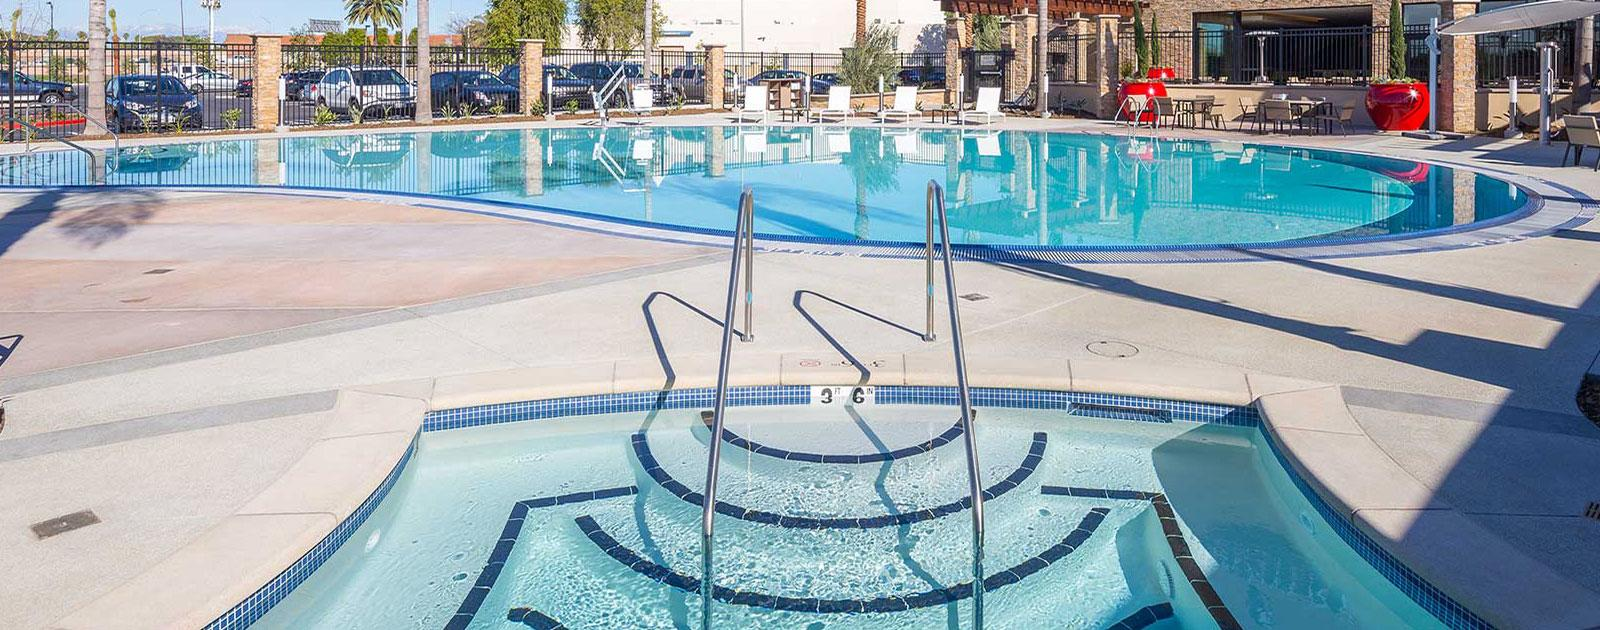 Country Inn Pool & Spa Project